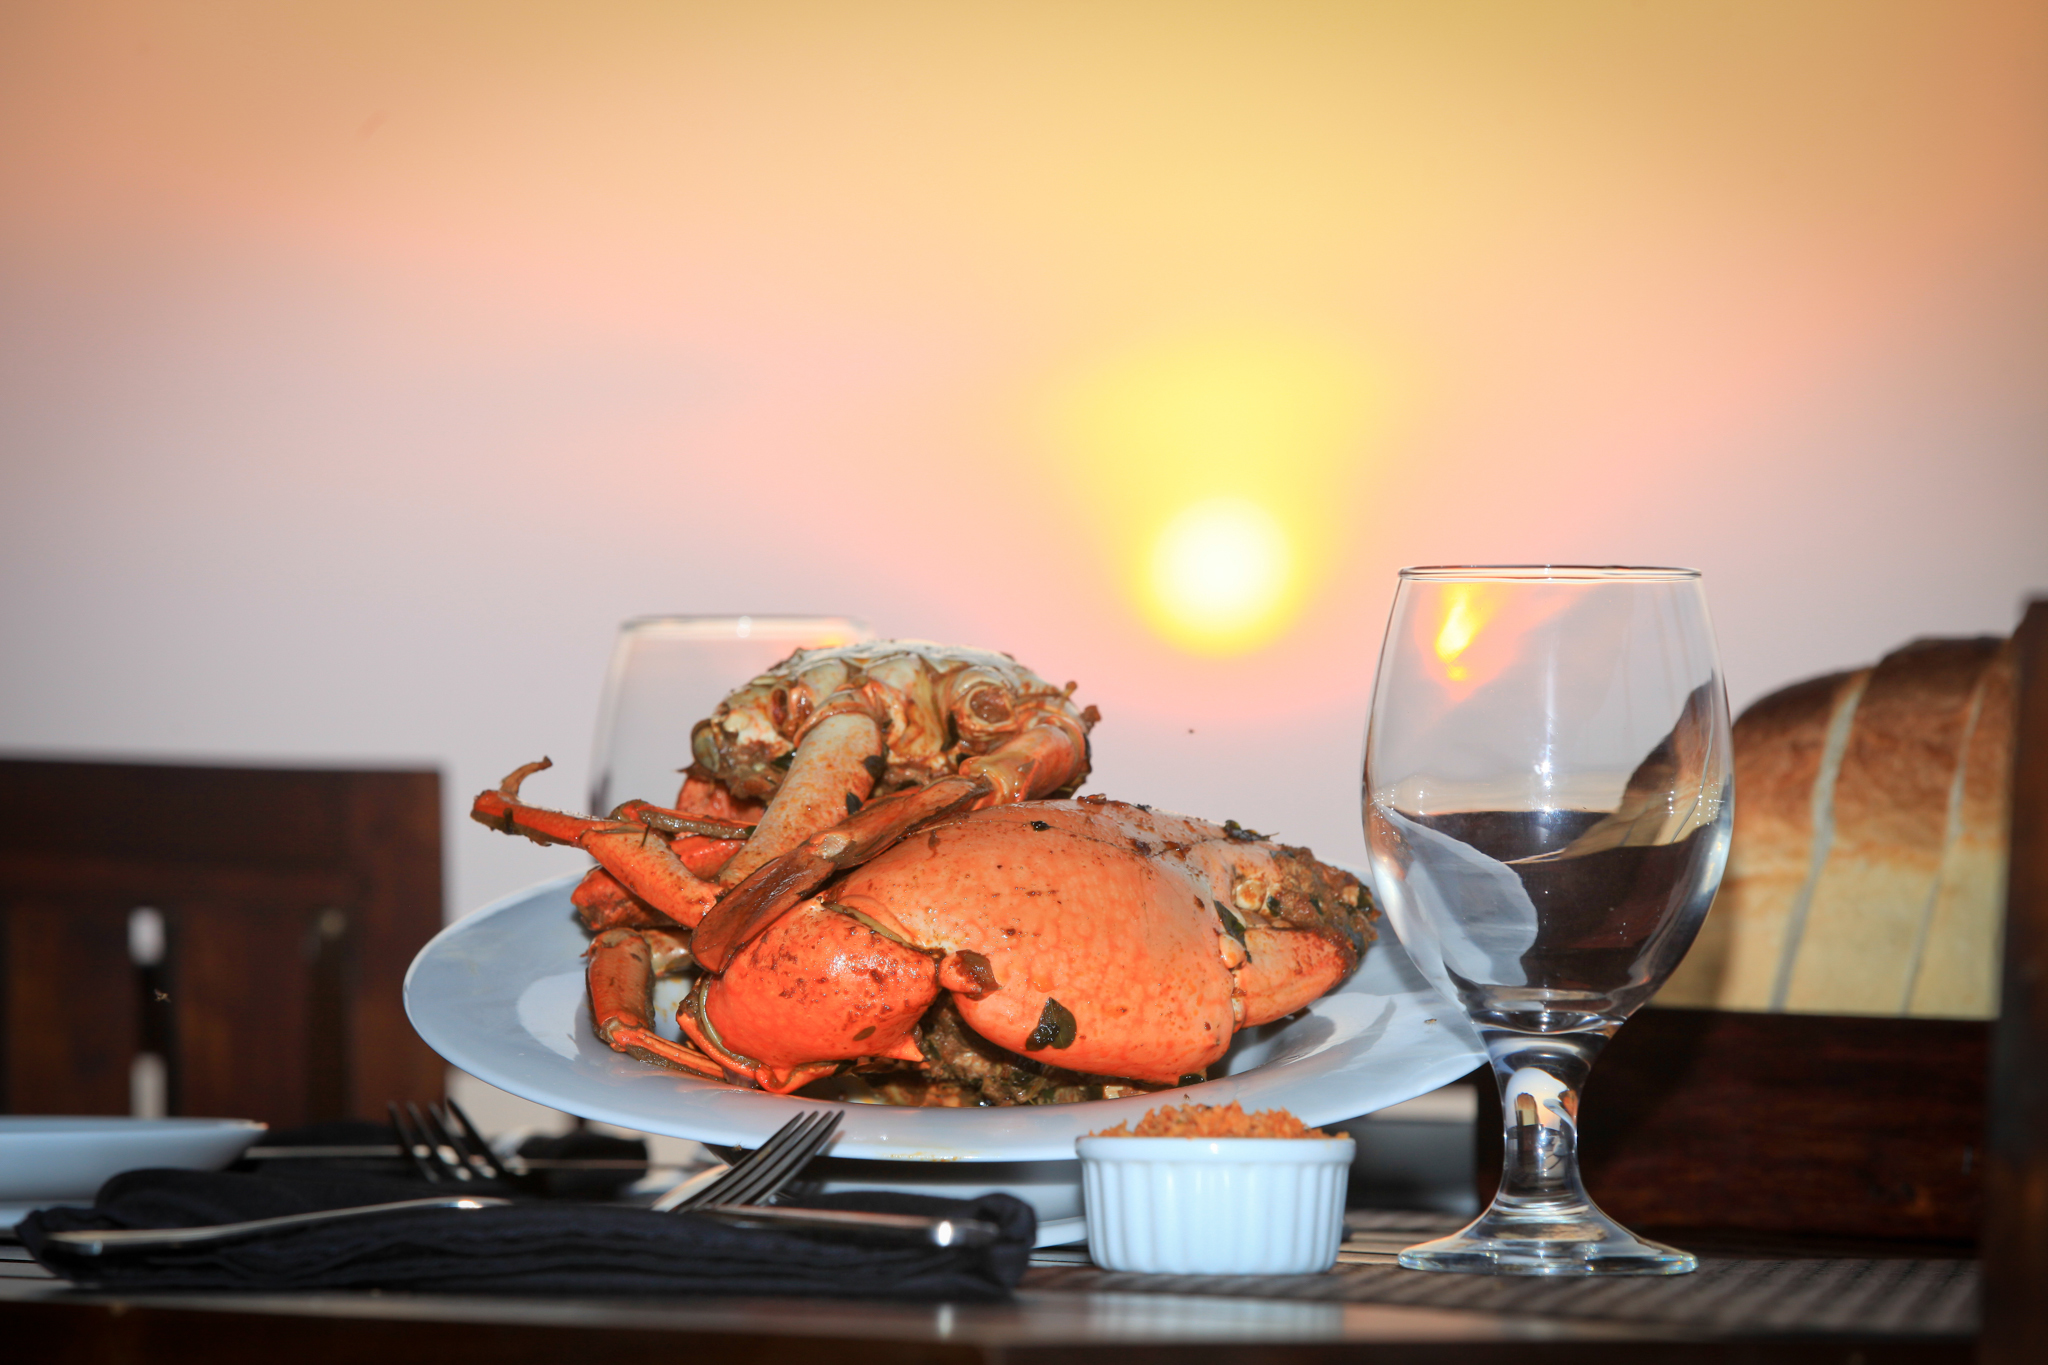 The Fat Crab is a seafood restaurant in Colombo